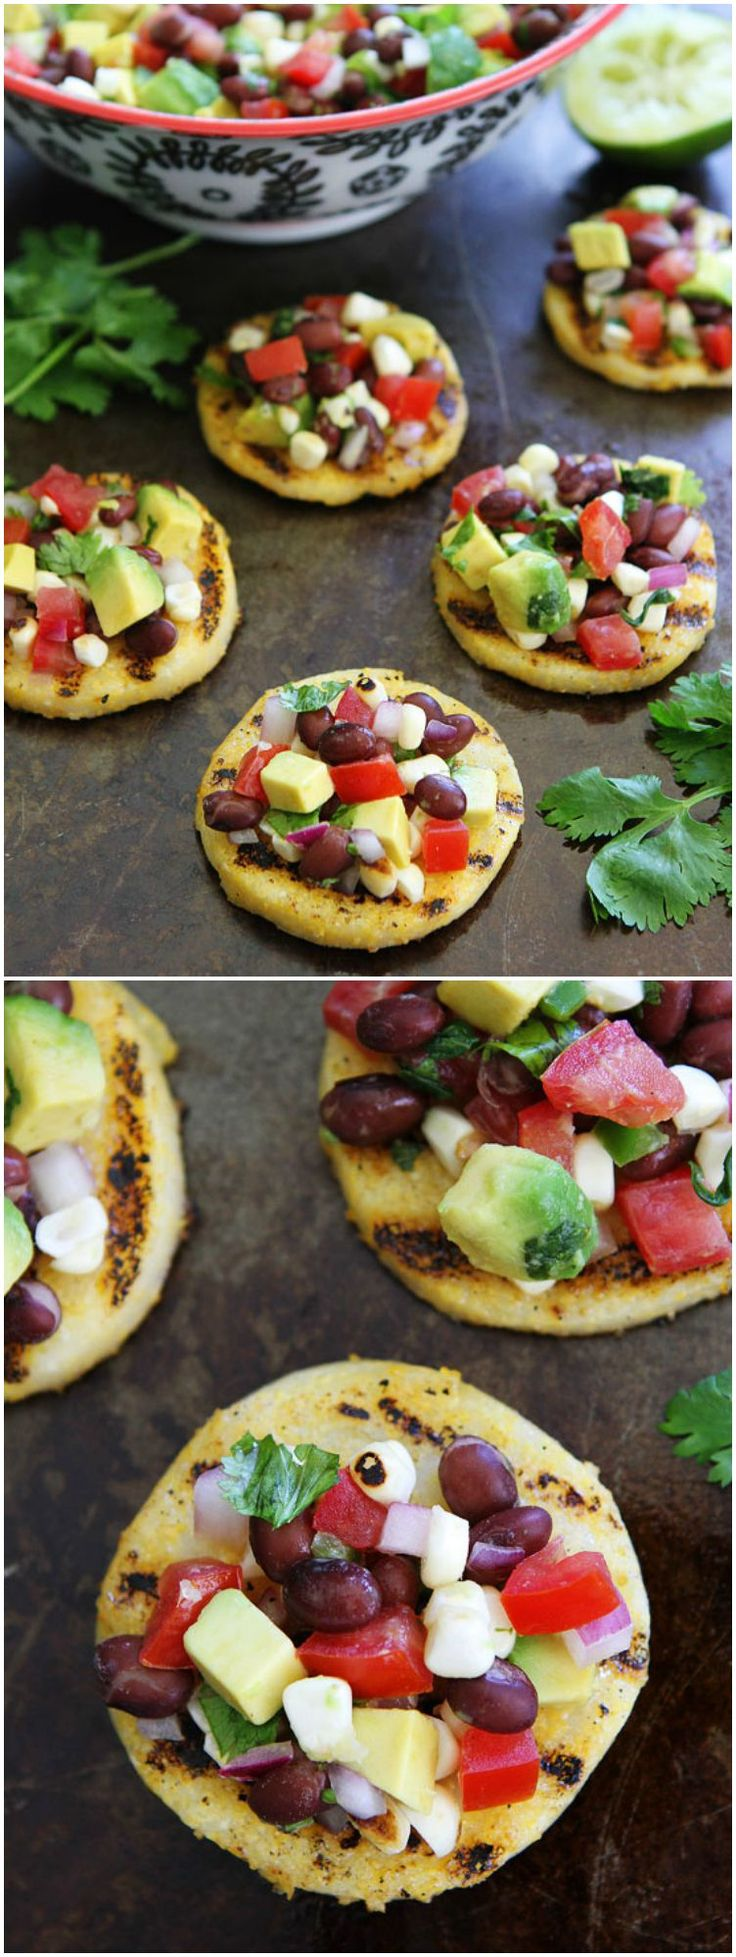 Grilled Polenta Rounds with Black Bean and Avocado Salsa Recipe on twopeasandtheirpod.com This easy appetizer is perfect for parties!